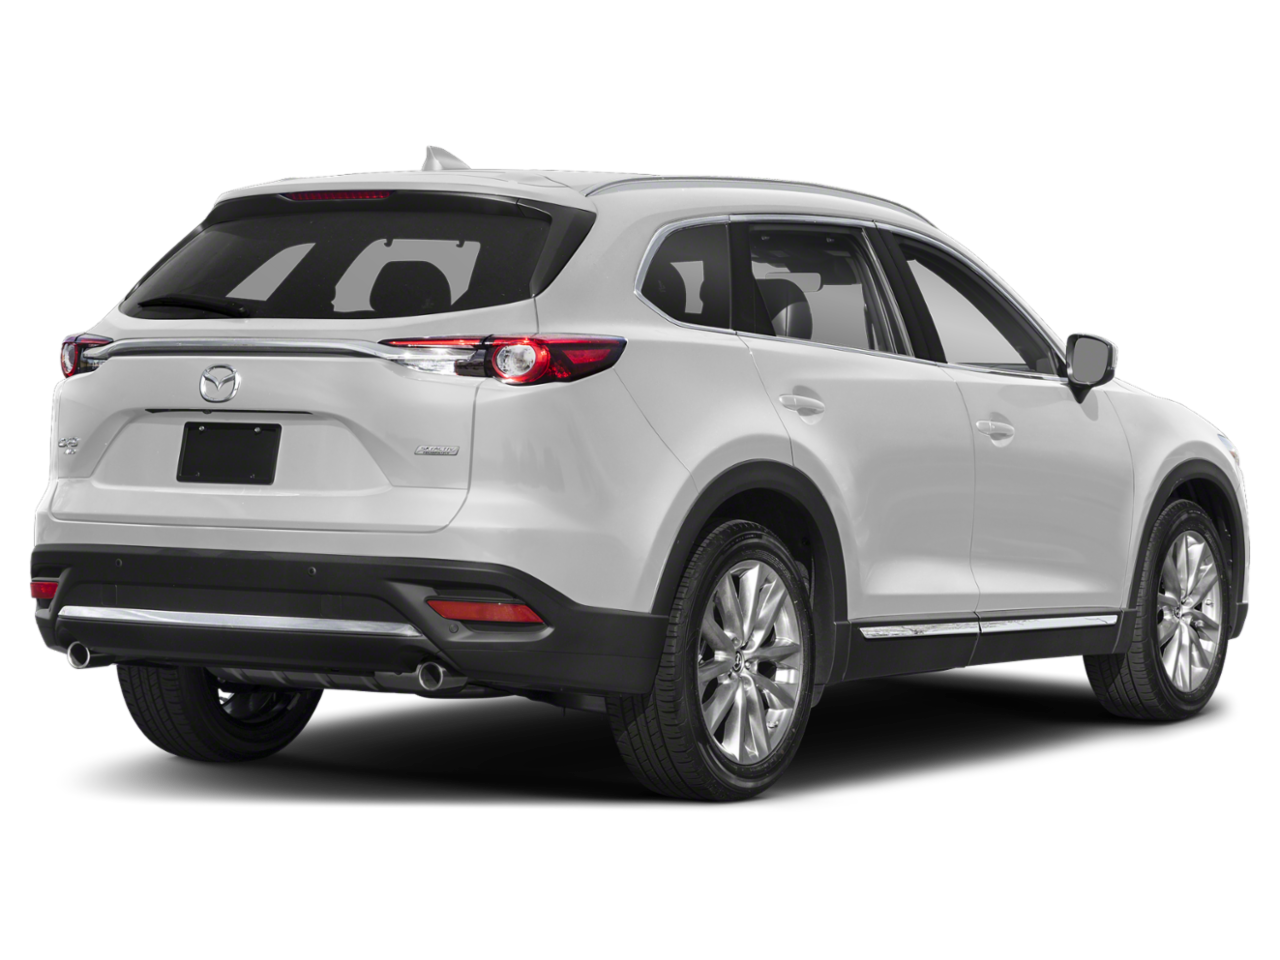 New 2019 Mazda CX-9 Grand Touring